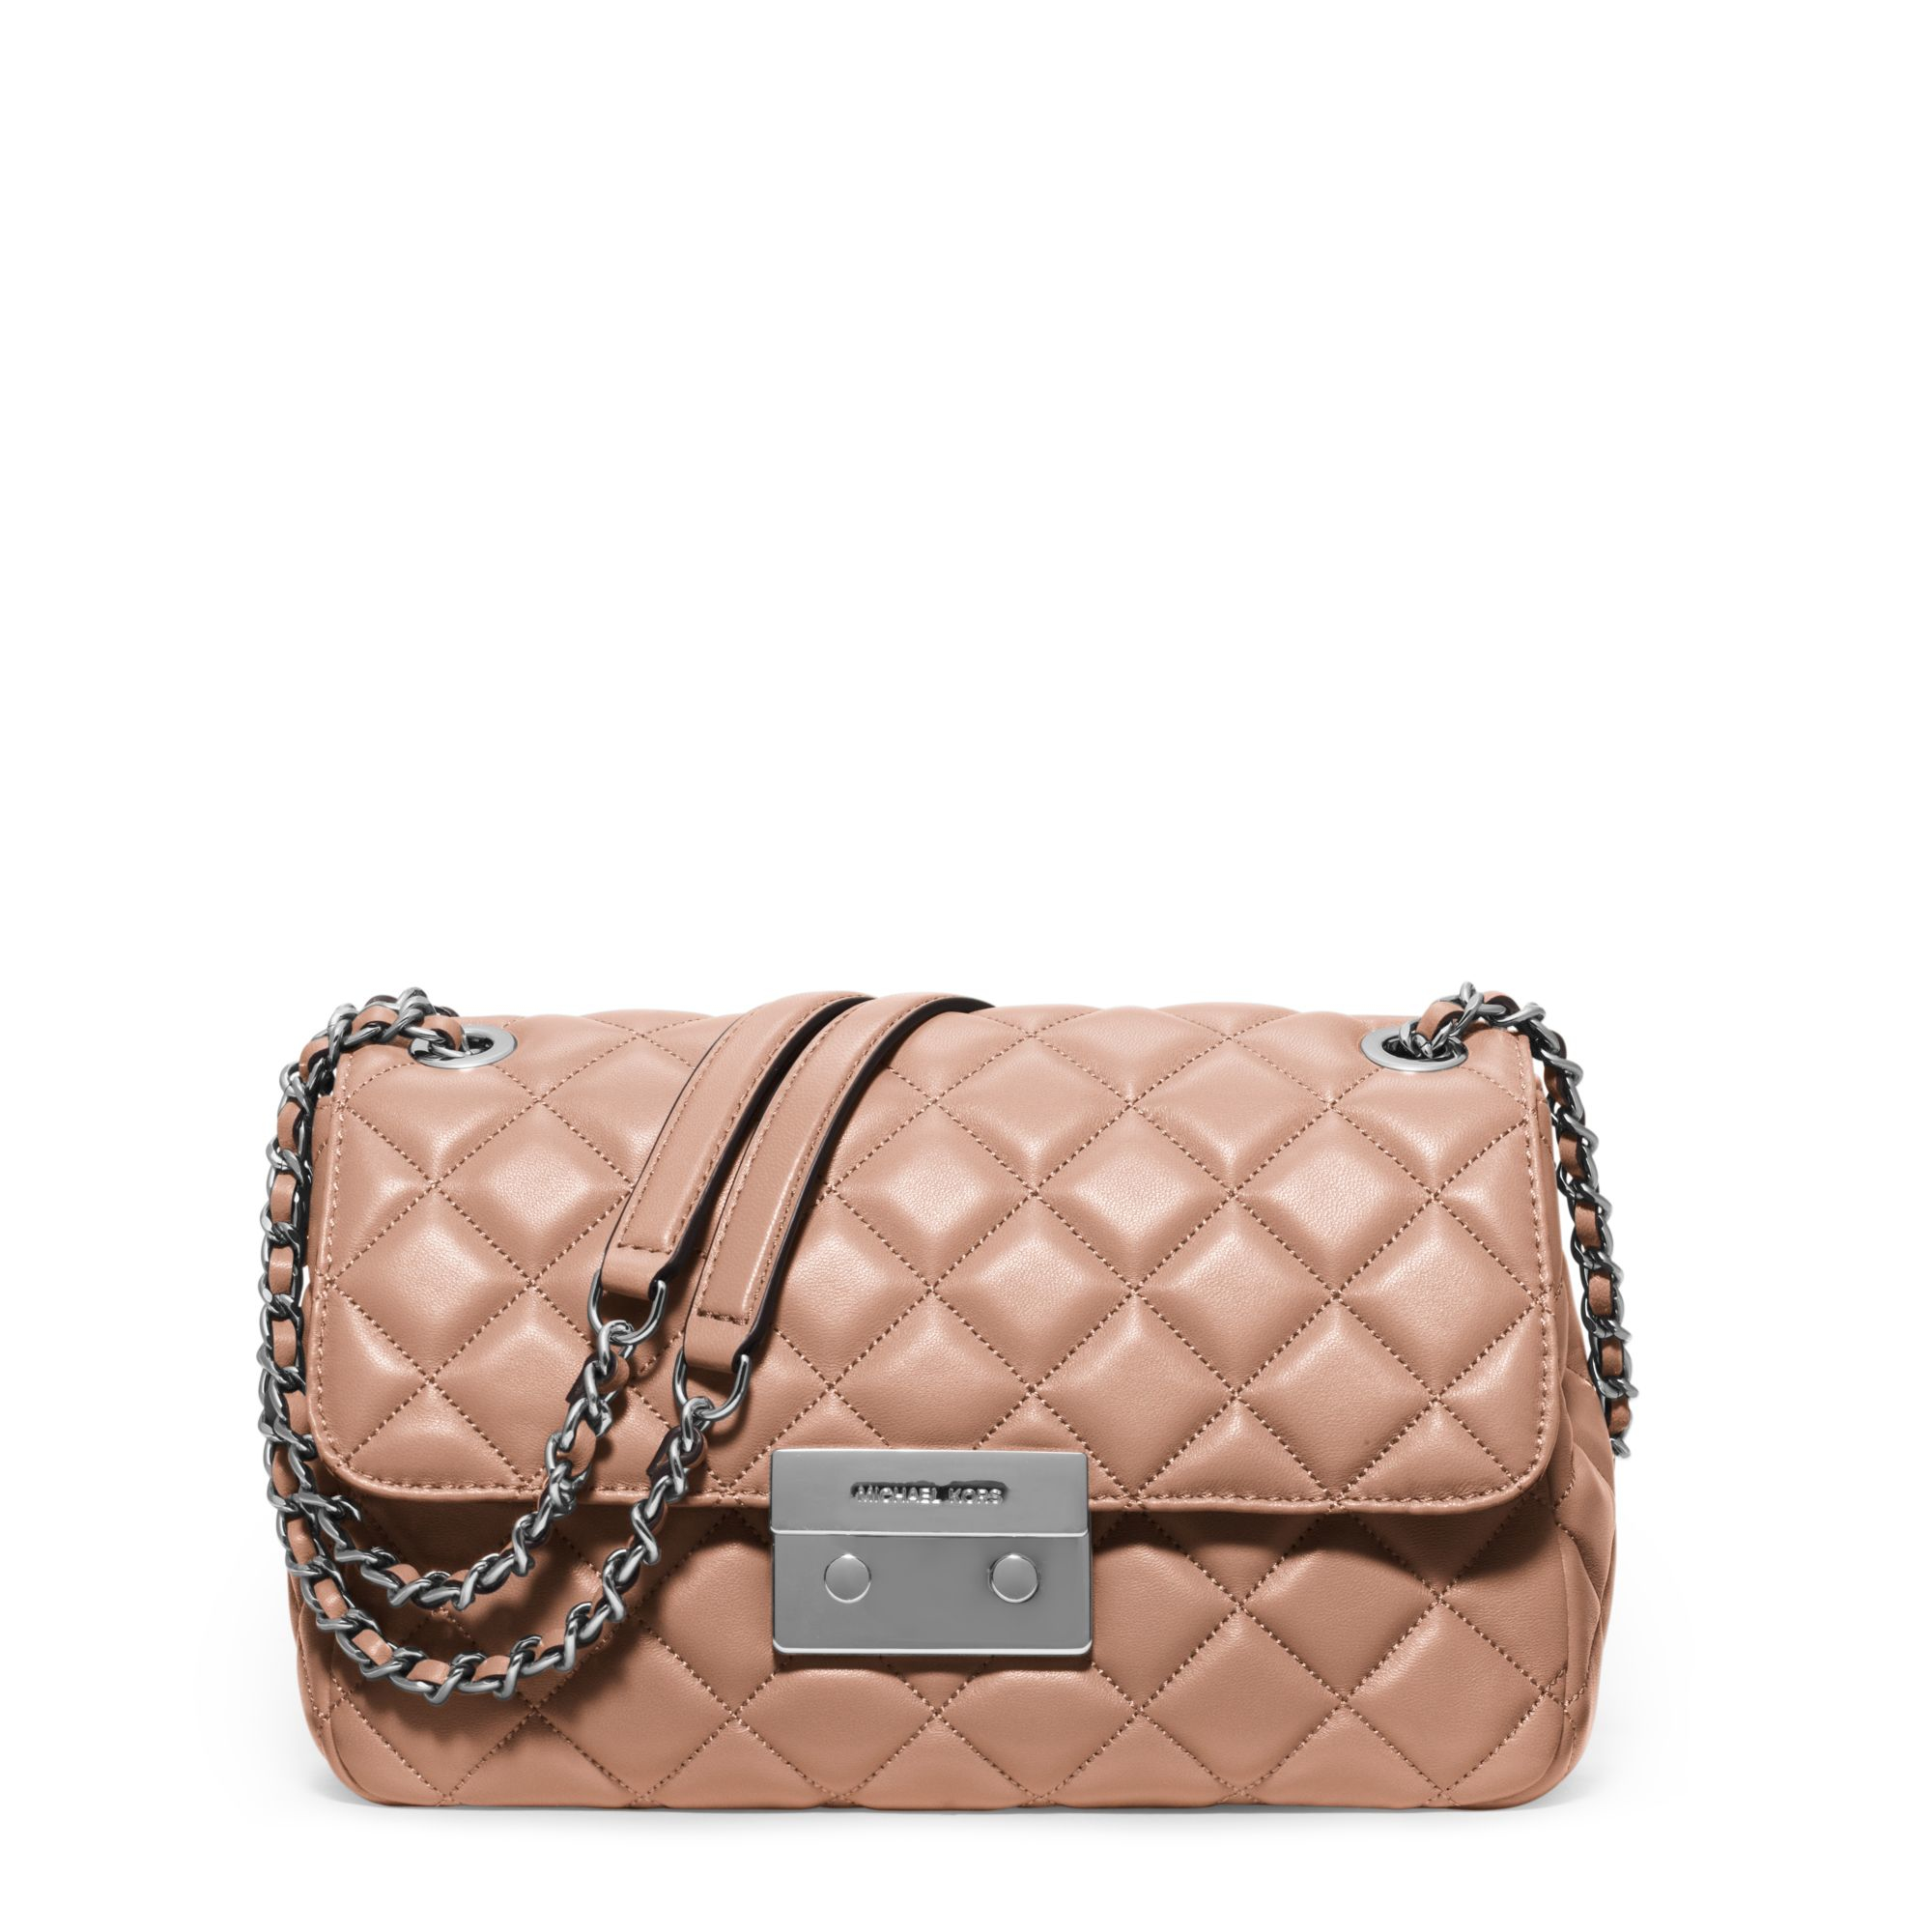 e6fc7667ac32 Lyst - Michael Kors Sloan Large Quilted-leather Shoulder Bag in Pink